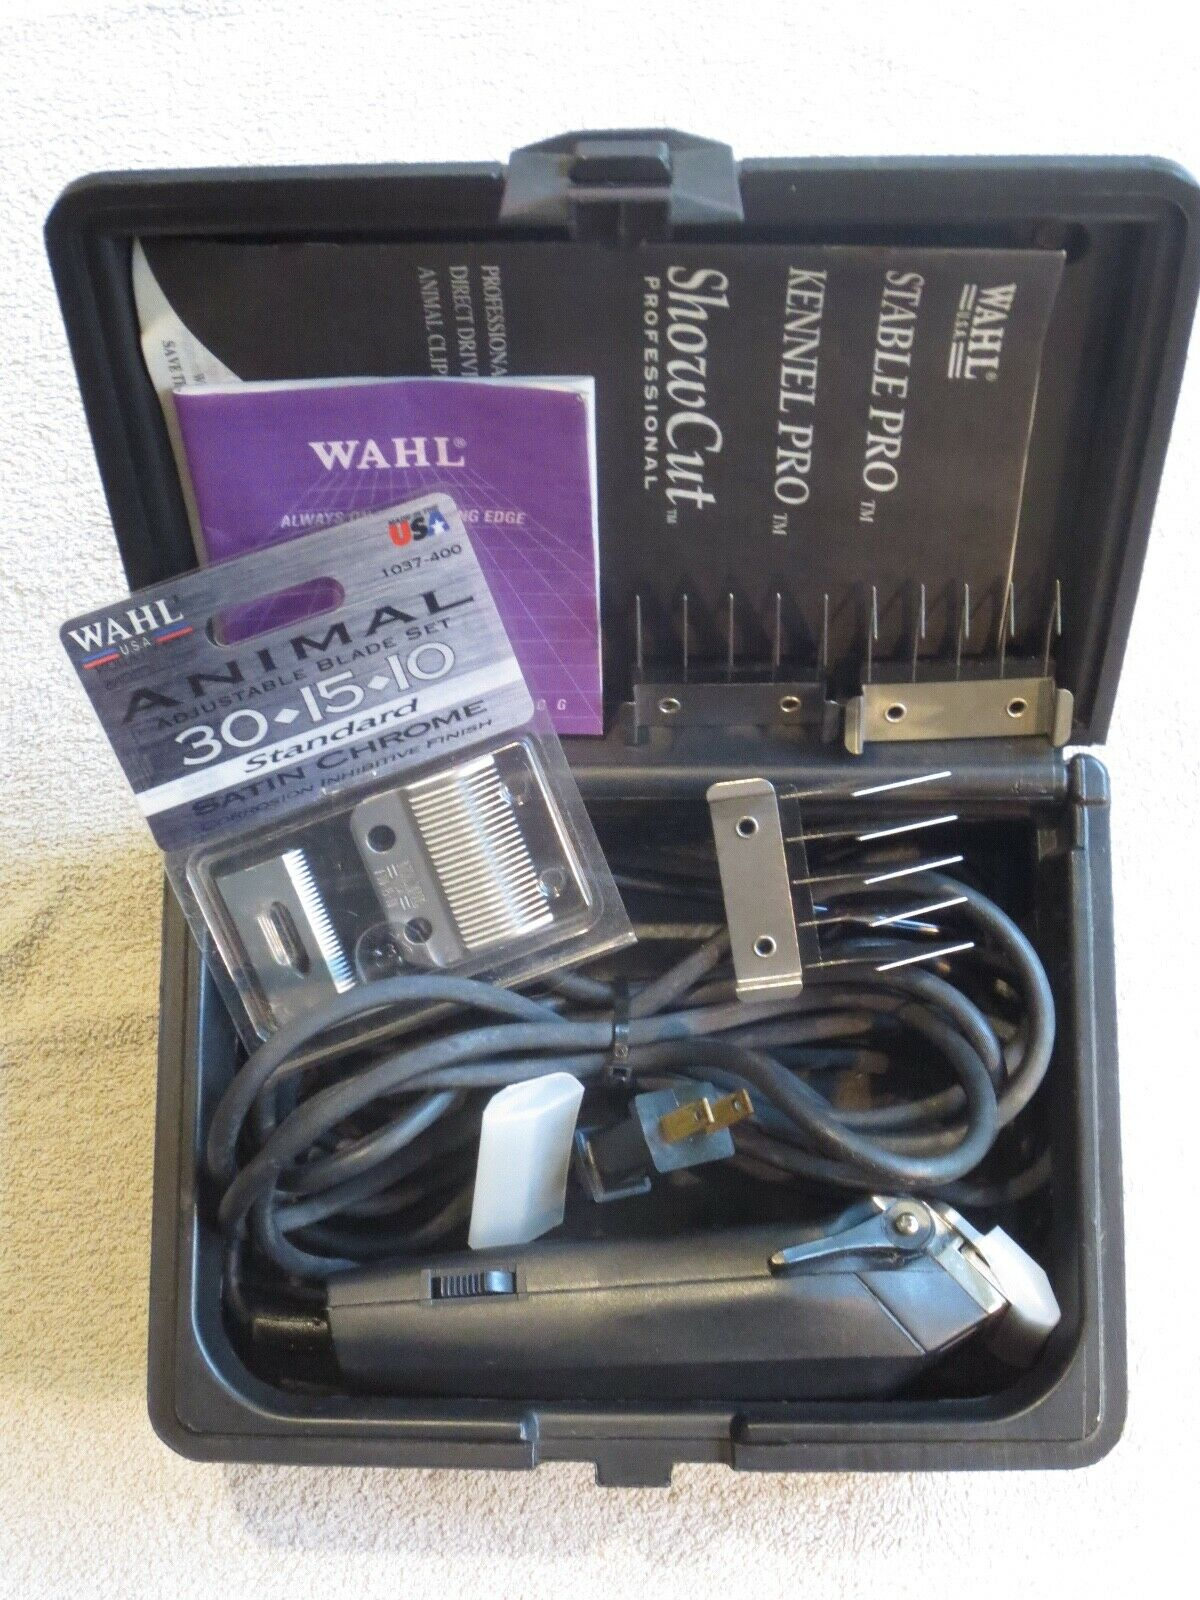 Wahl Kennel Pro 8892 Direct Drive Grooming Kit Complete + Extra Blade Set   Exc